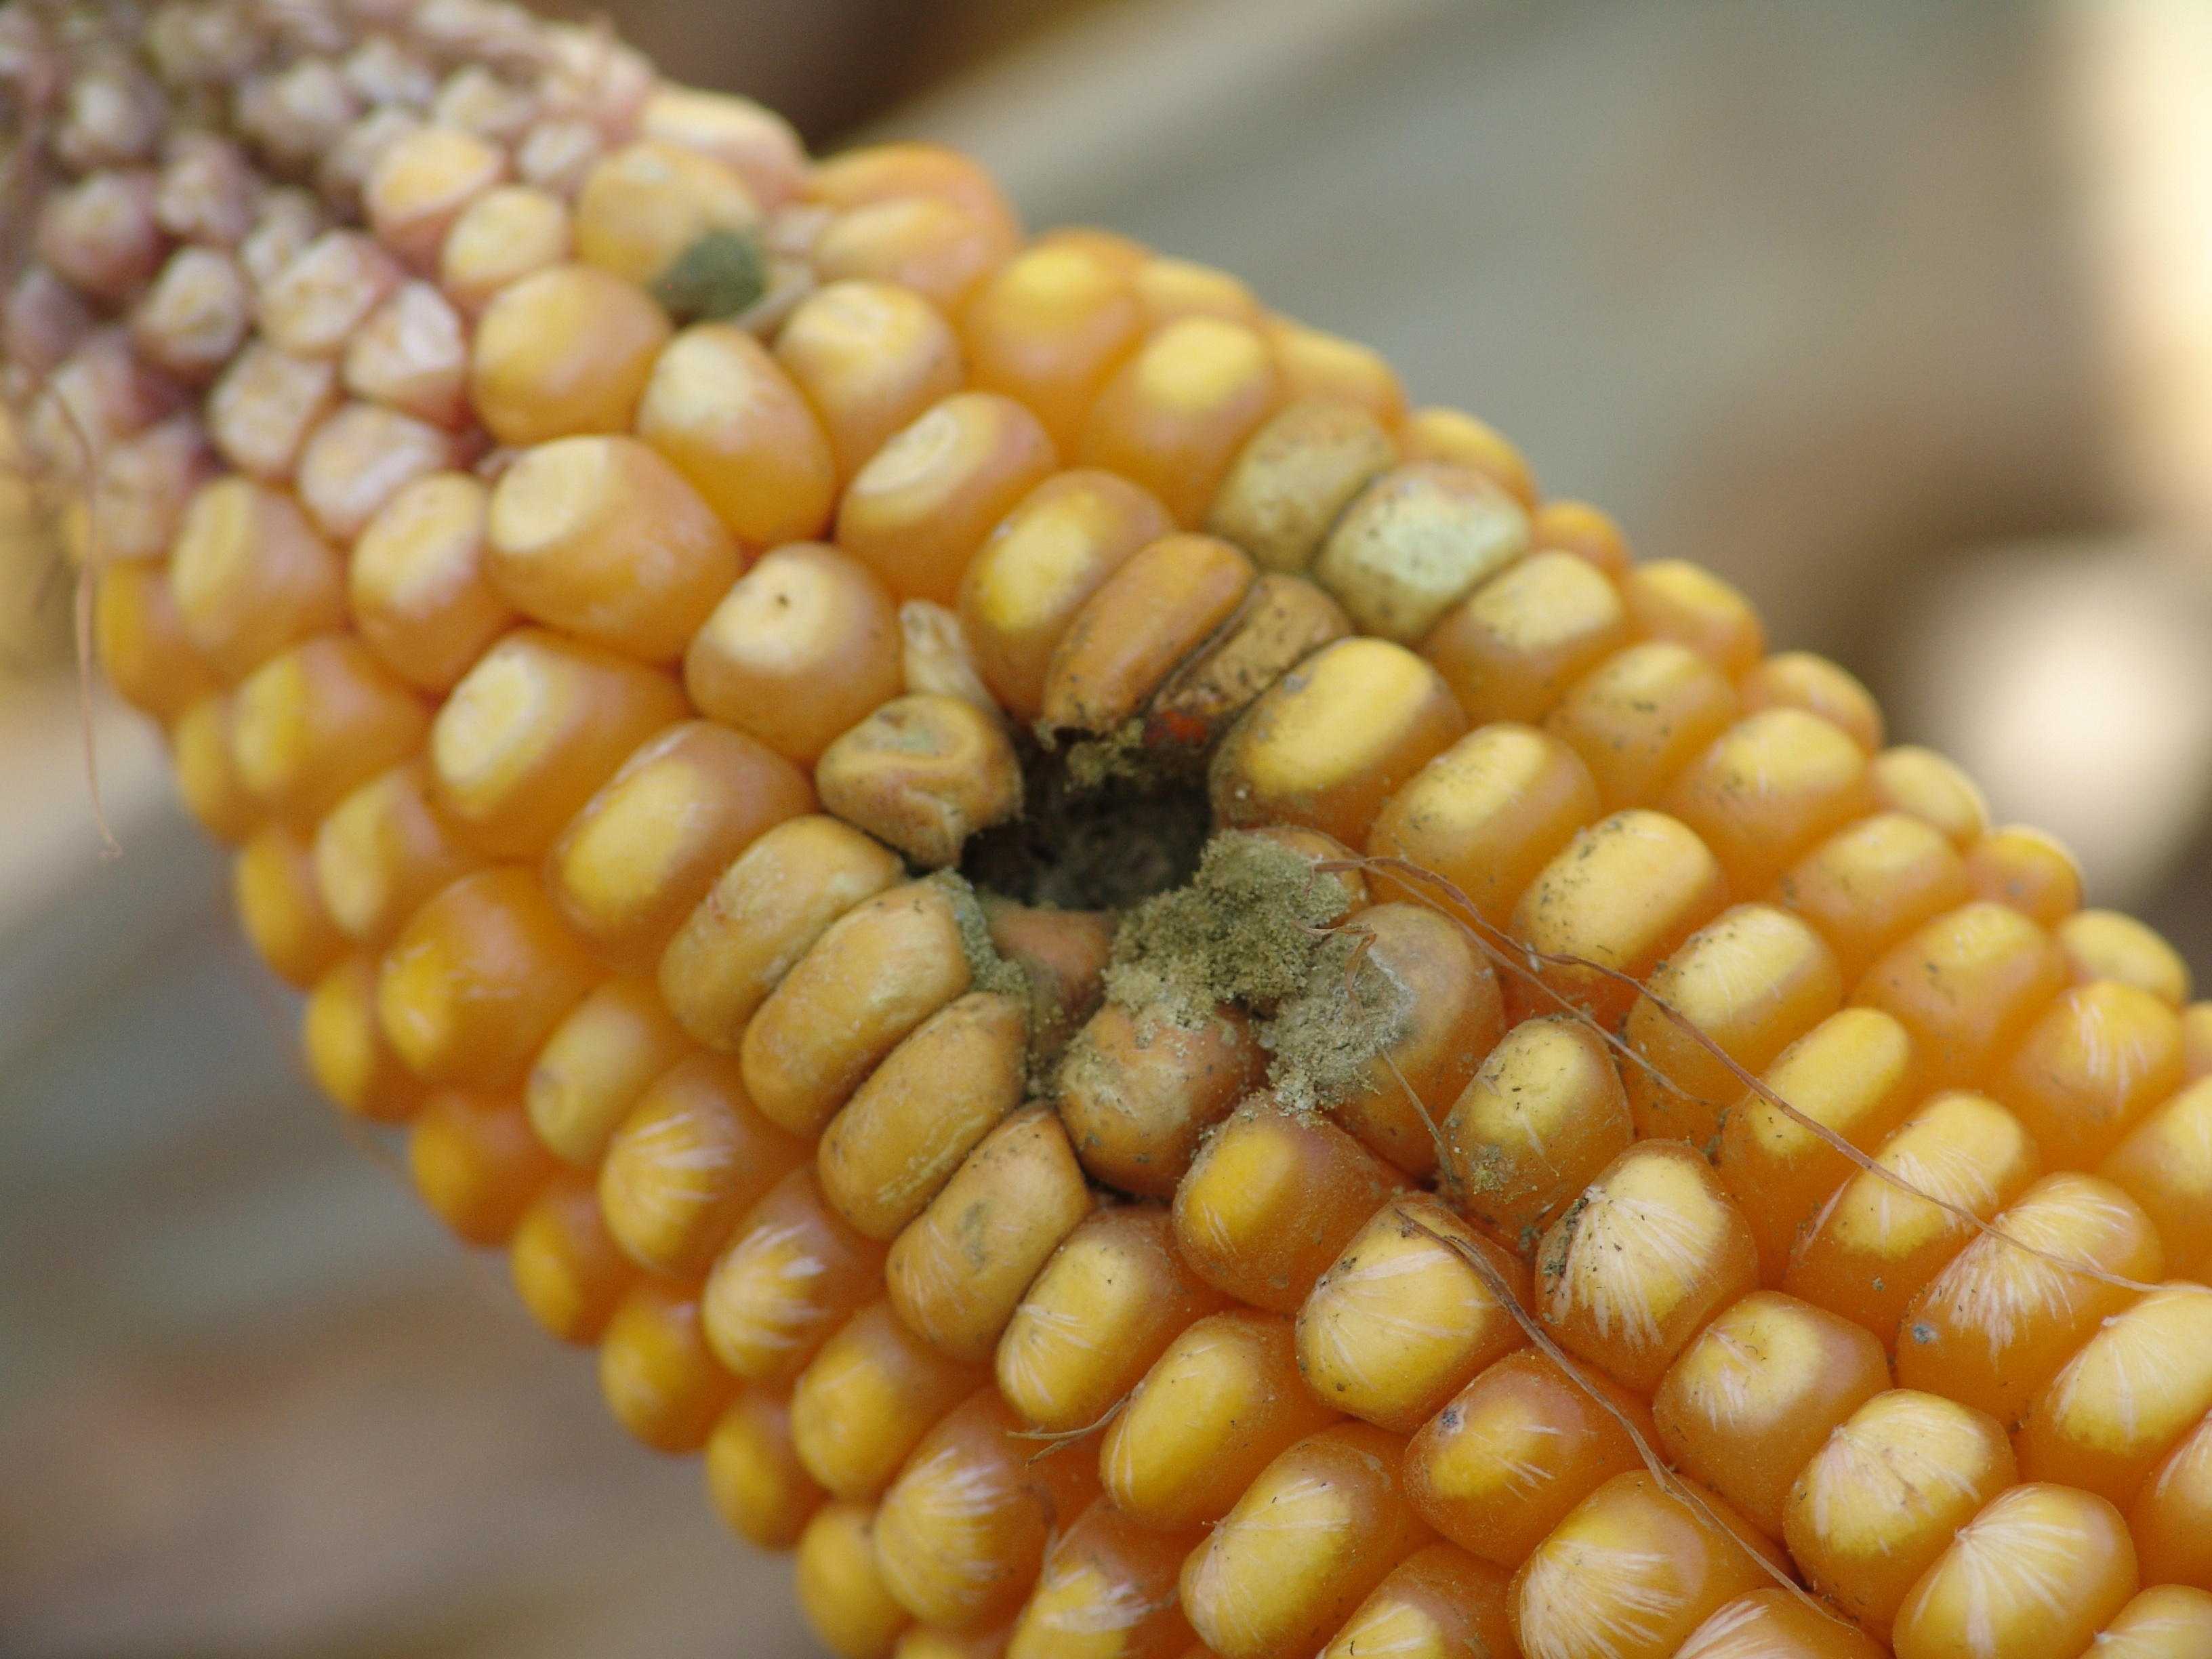 Ear and Stalk Rot Diseases Becoming More Common in Corn Fields | CropWatch  | University of Nebraska–Lincoln